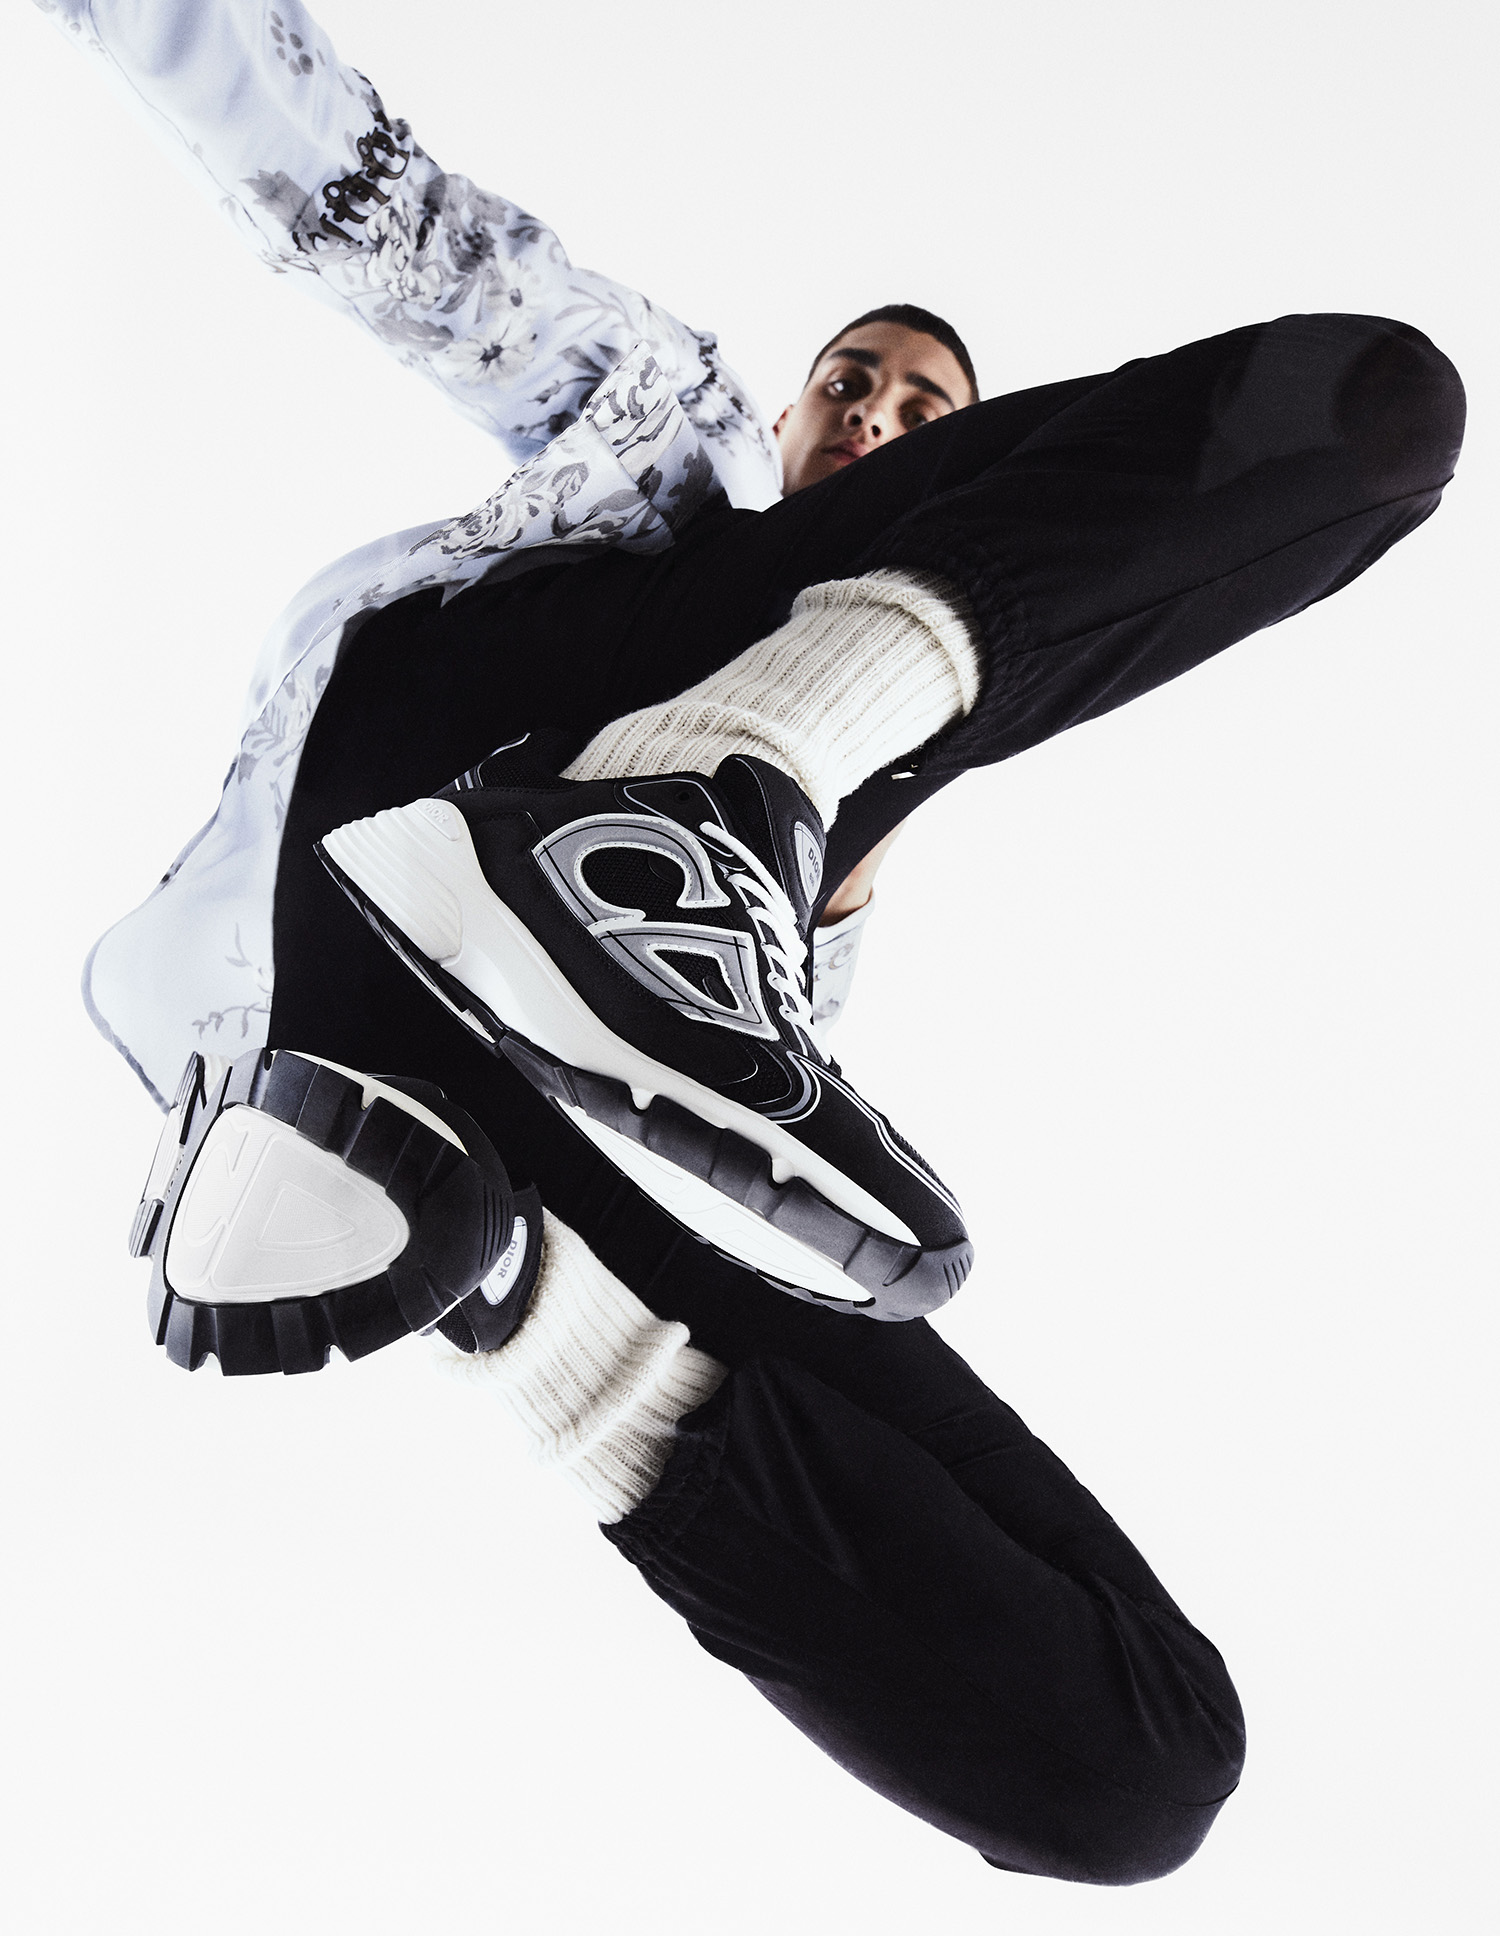 The new Dior B30 sneakers by Kim Jones